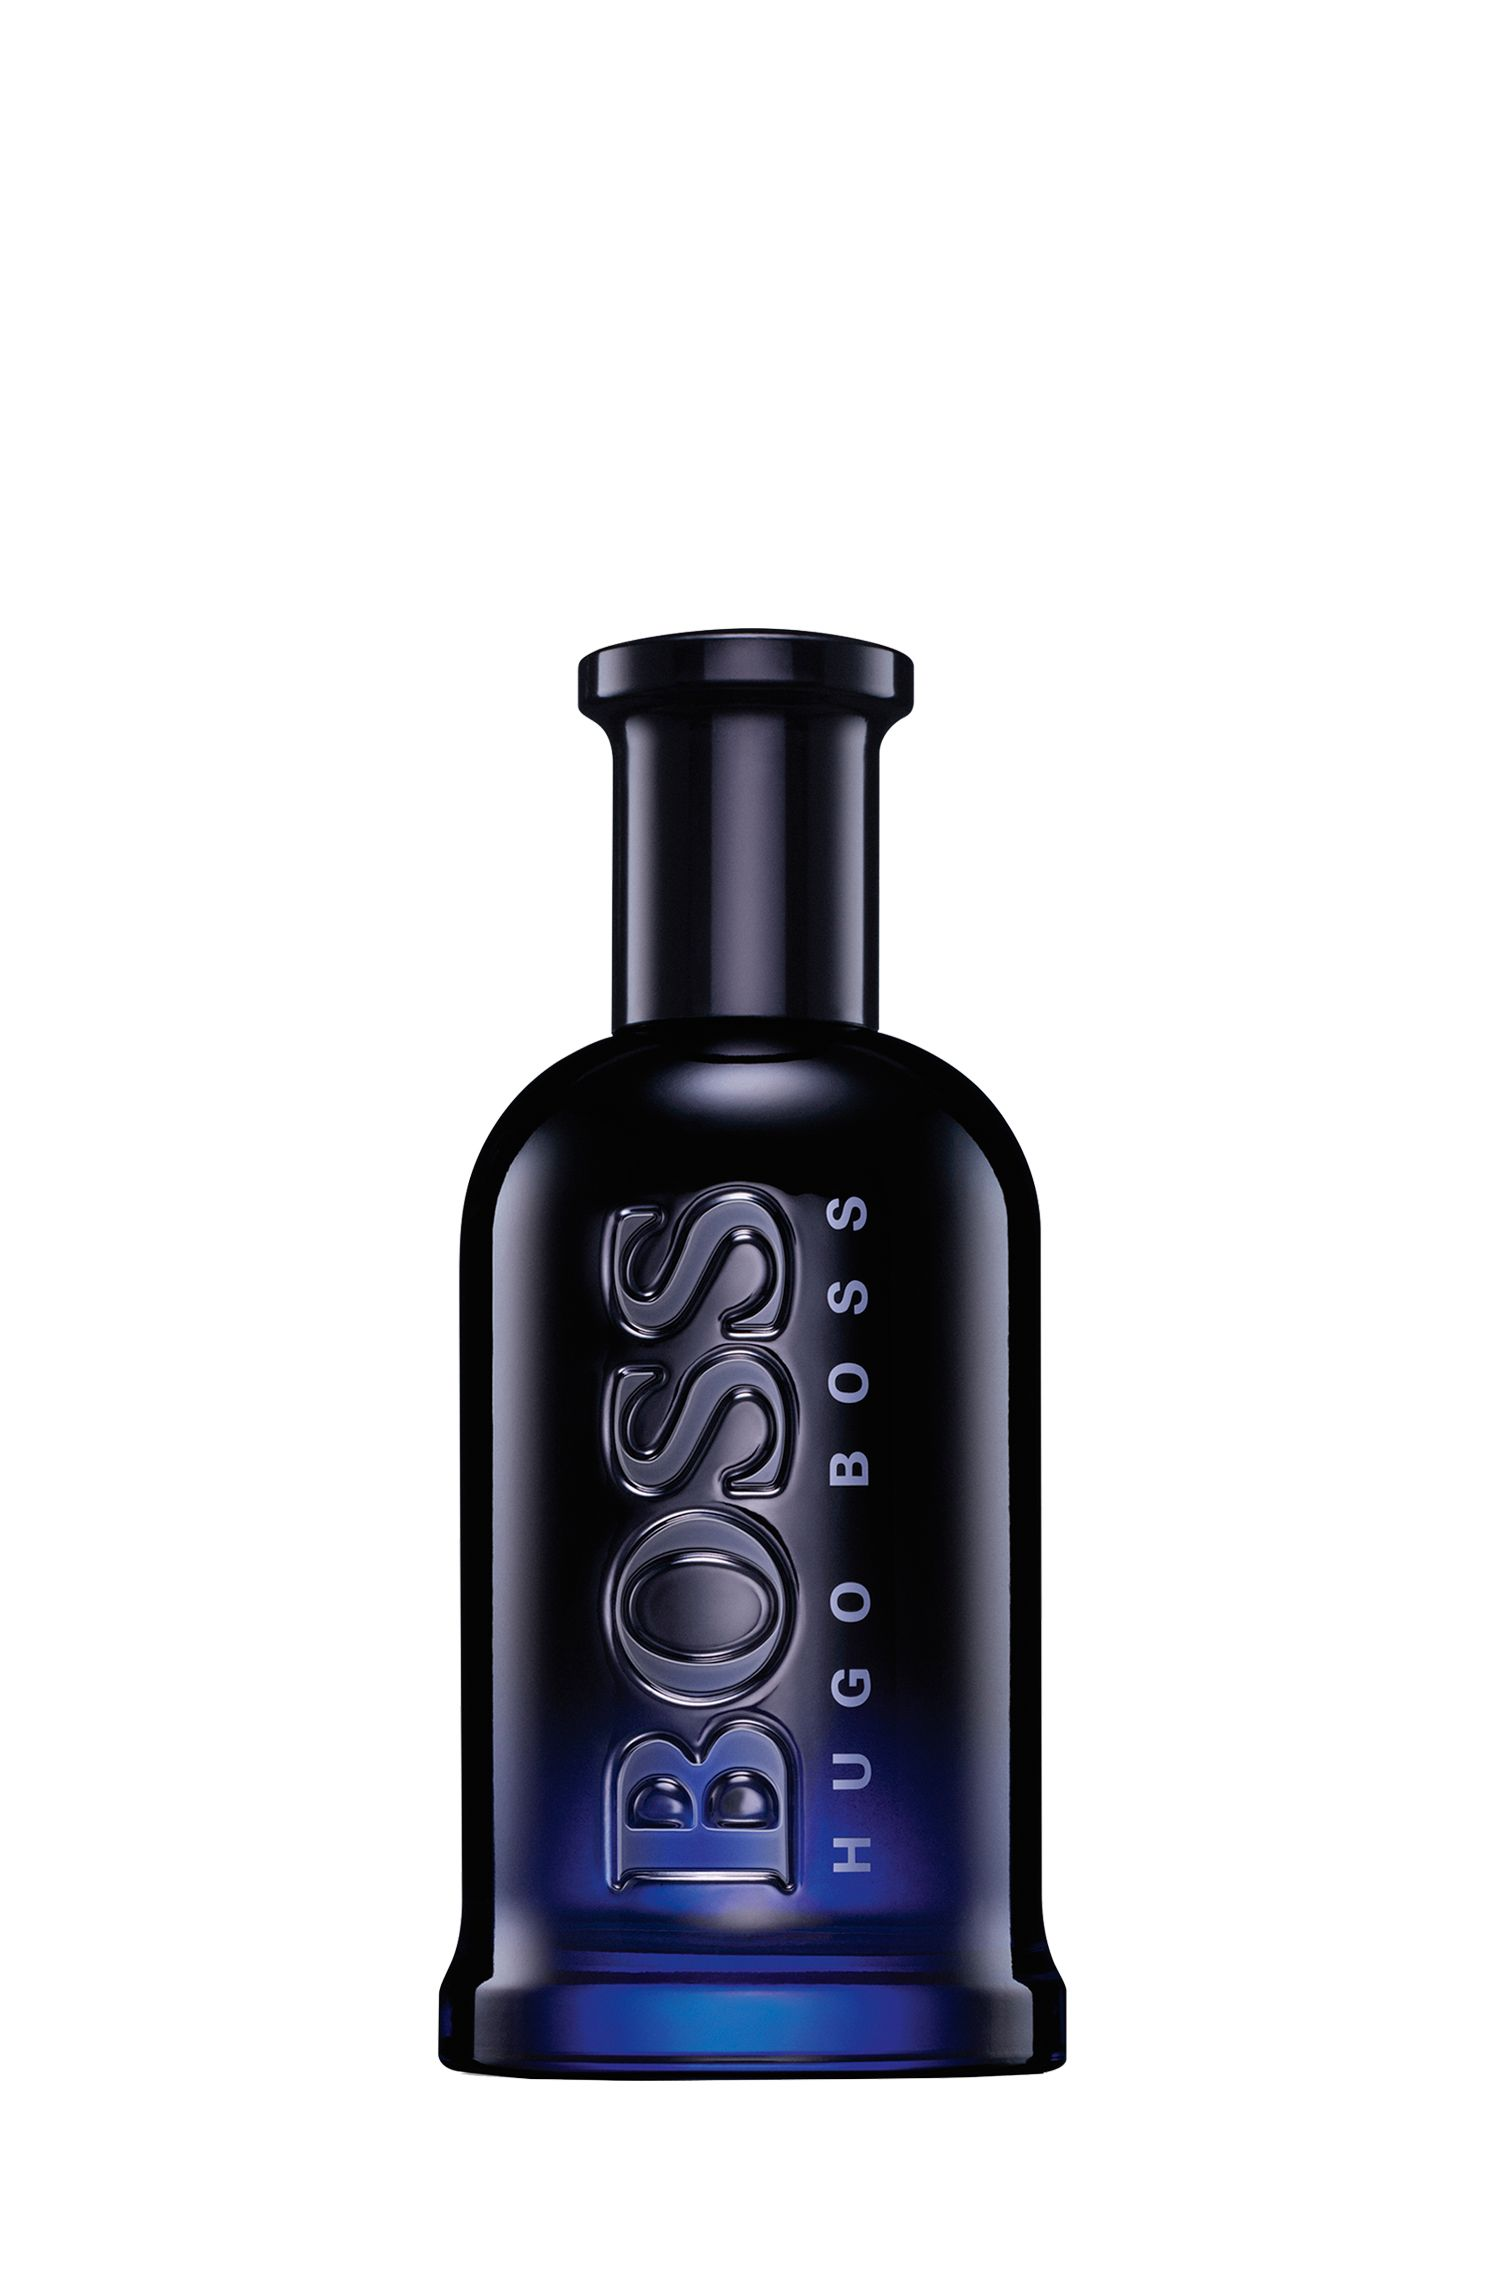 BOSS Bottled Night Eau de Toilette 50 ml